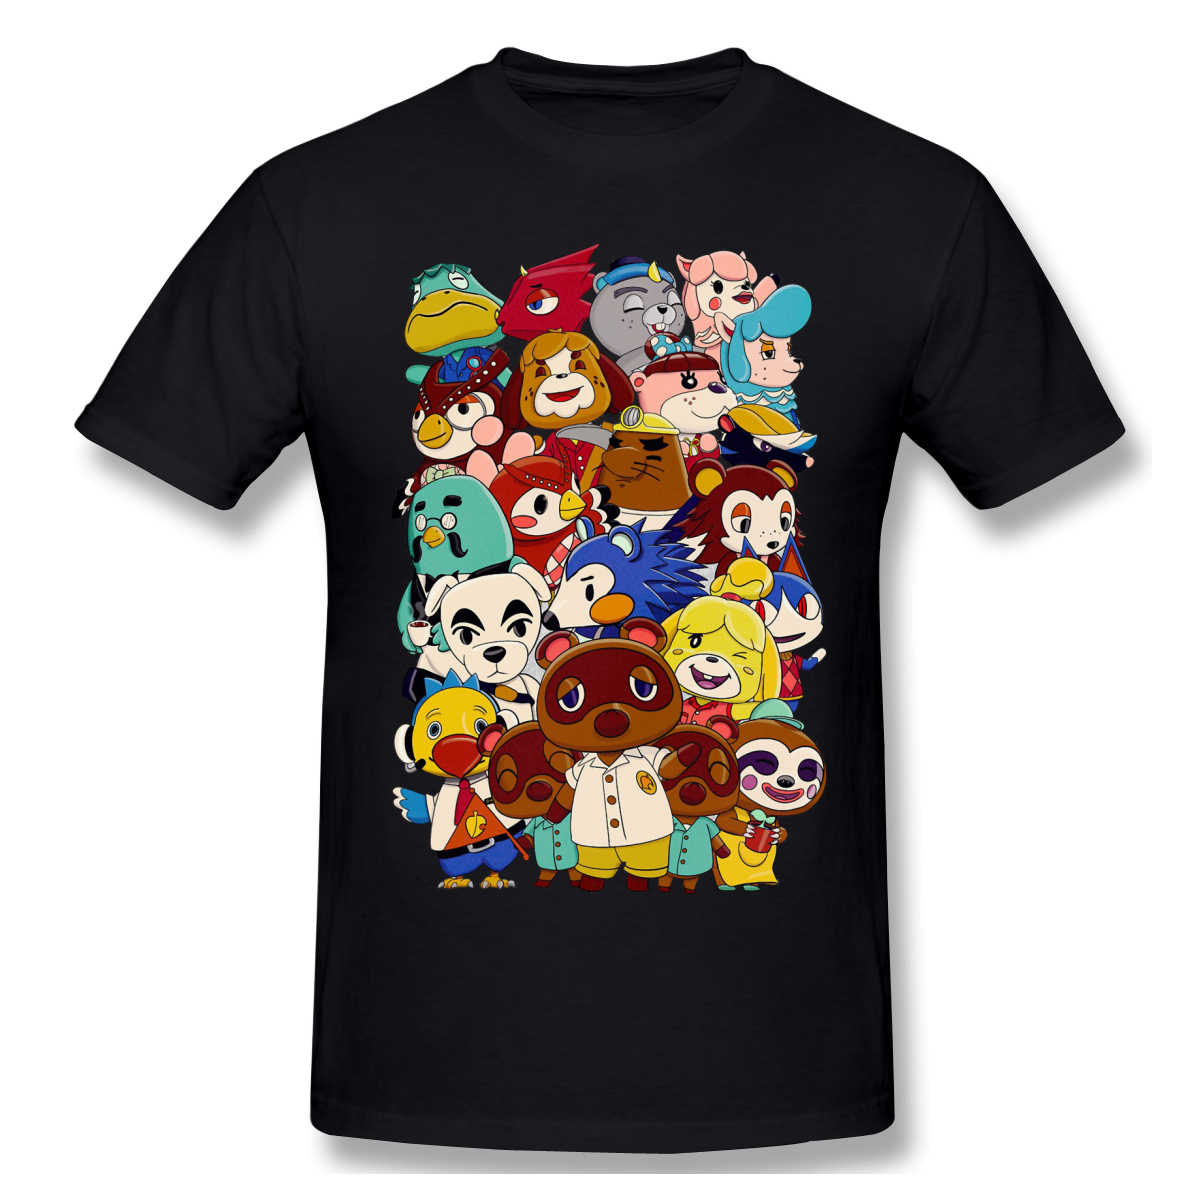 Die Charaktere Lustige T-Shirt Männer Sommer O Neck Casual Baumwolle T Shirt Graphic Tee animal crossing new horizons Crew Neck top